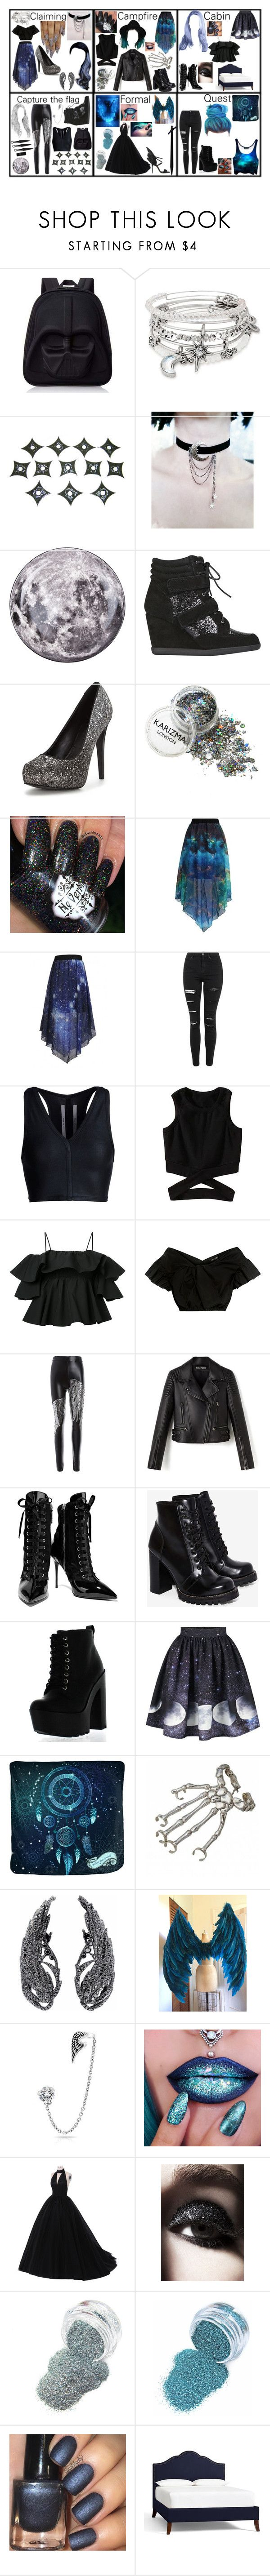 """""""Luna"""" by nanixmc ❤ liked on Polyvore featuring Loungefly, Alex and Ani, Seletti, Carvela, WithChic, Topshop, Rick Owens, MSGM, Rachel Comey and Giuseppe Zanotti"""